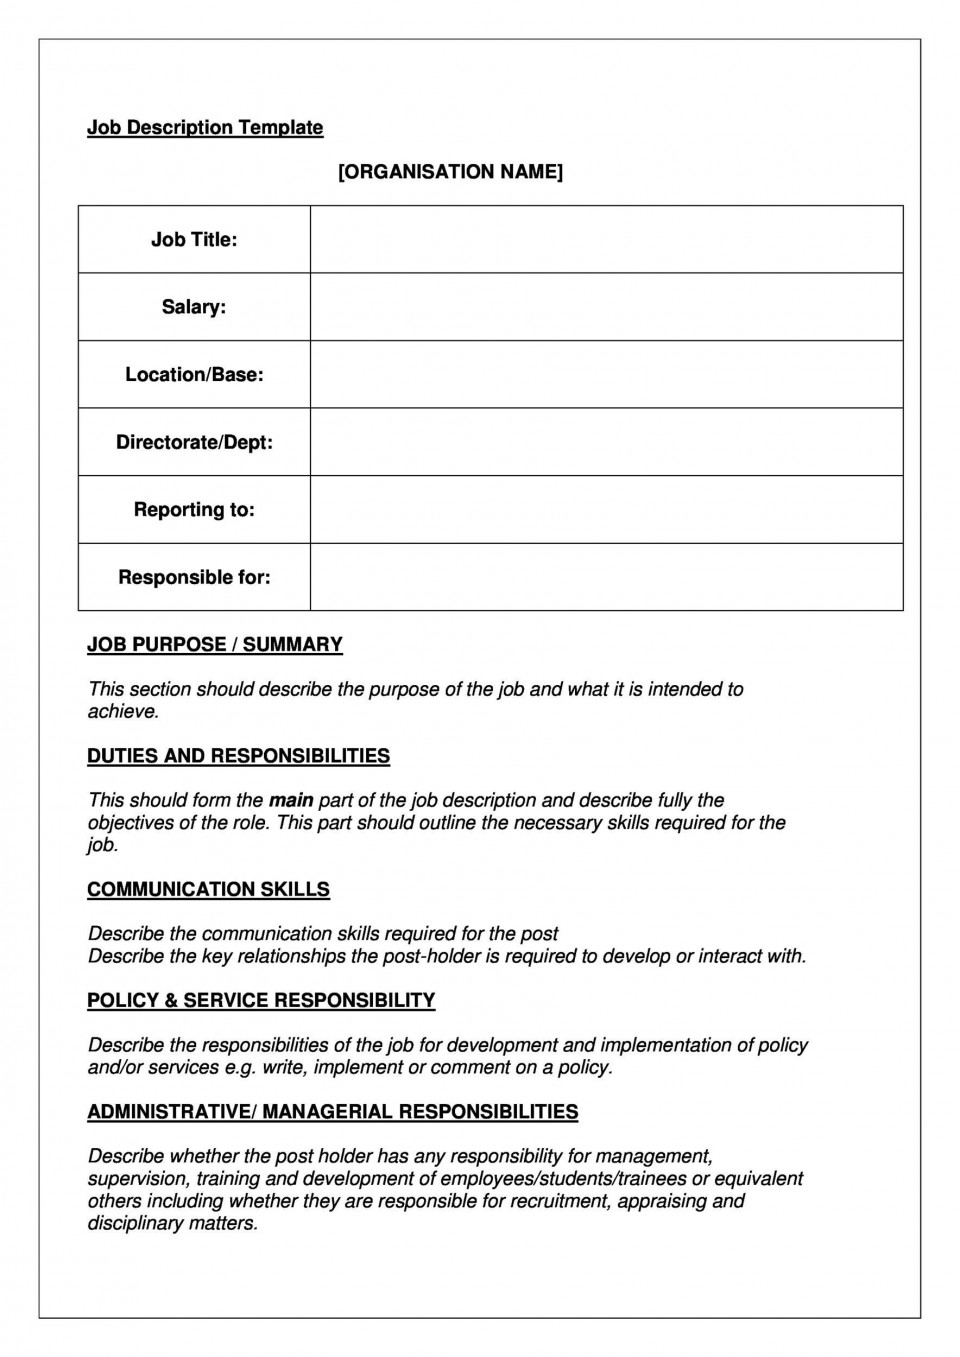 005 Stupendou Blank Job Description Template Picture  Word Free Printable960